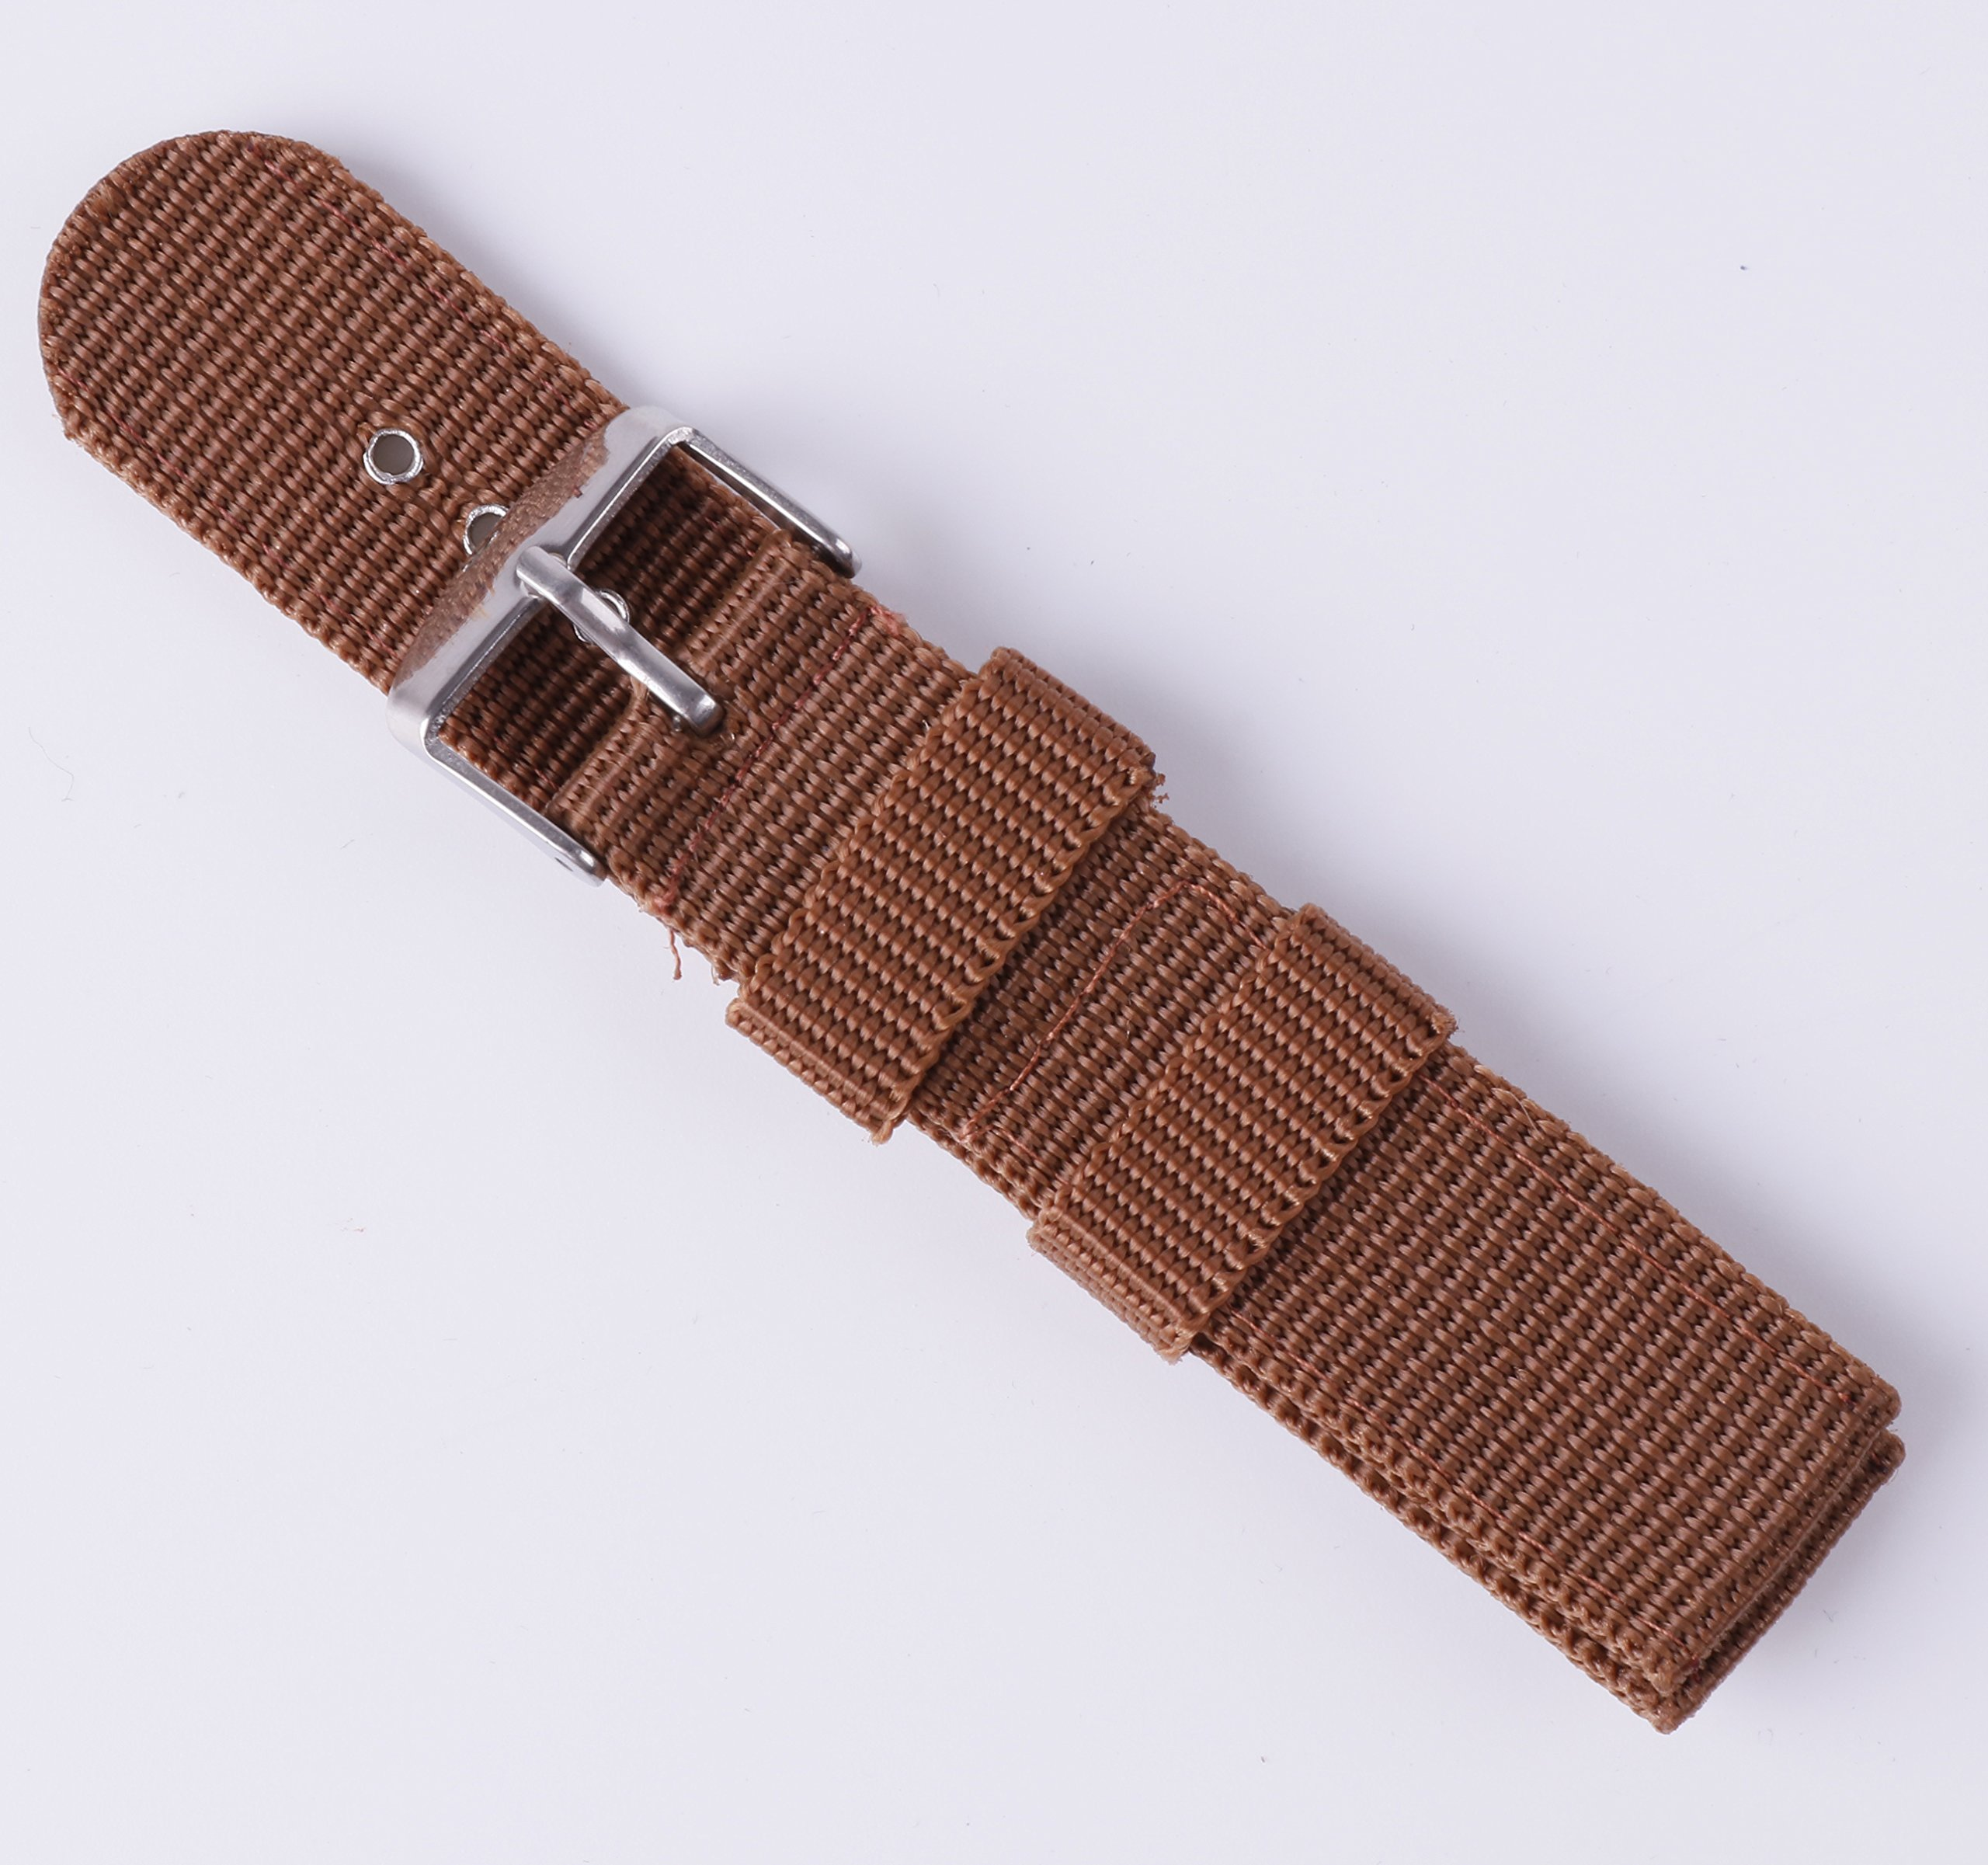 4pcs Nylon Watch Bands 16mm 18mm 20mm 22mm 24mm Premium Replacement NATO Style Watch Straps for Women Men by BONSTRAP (Image #4)